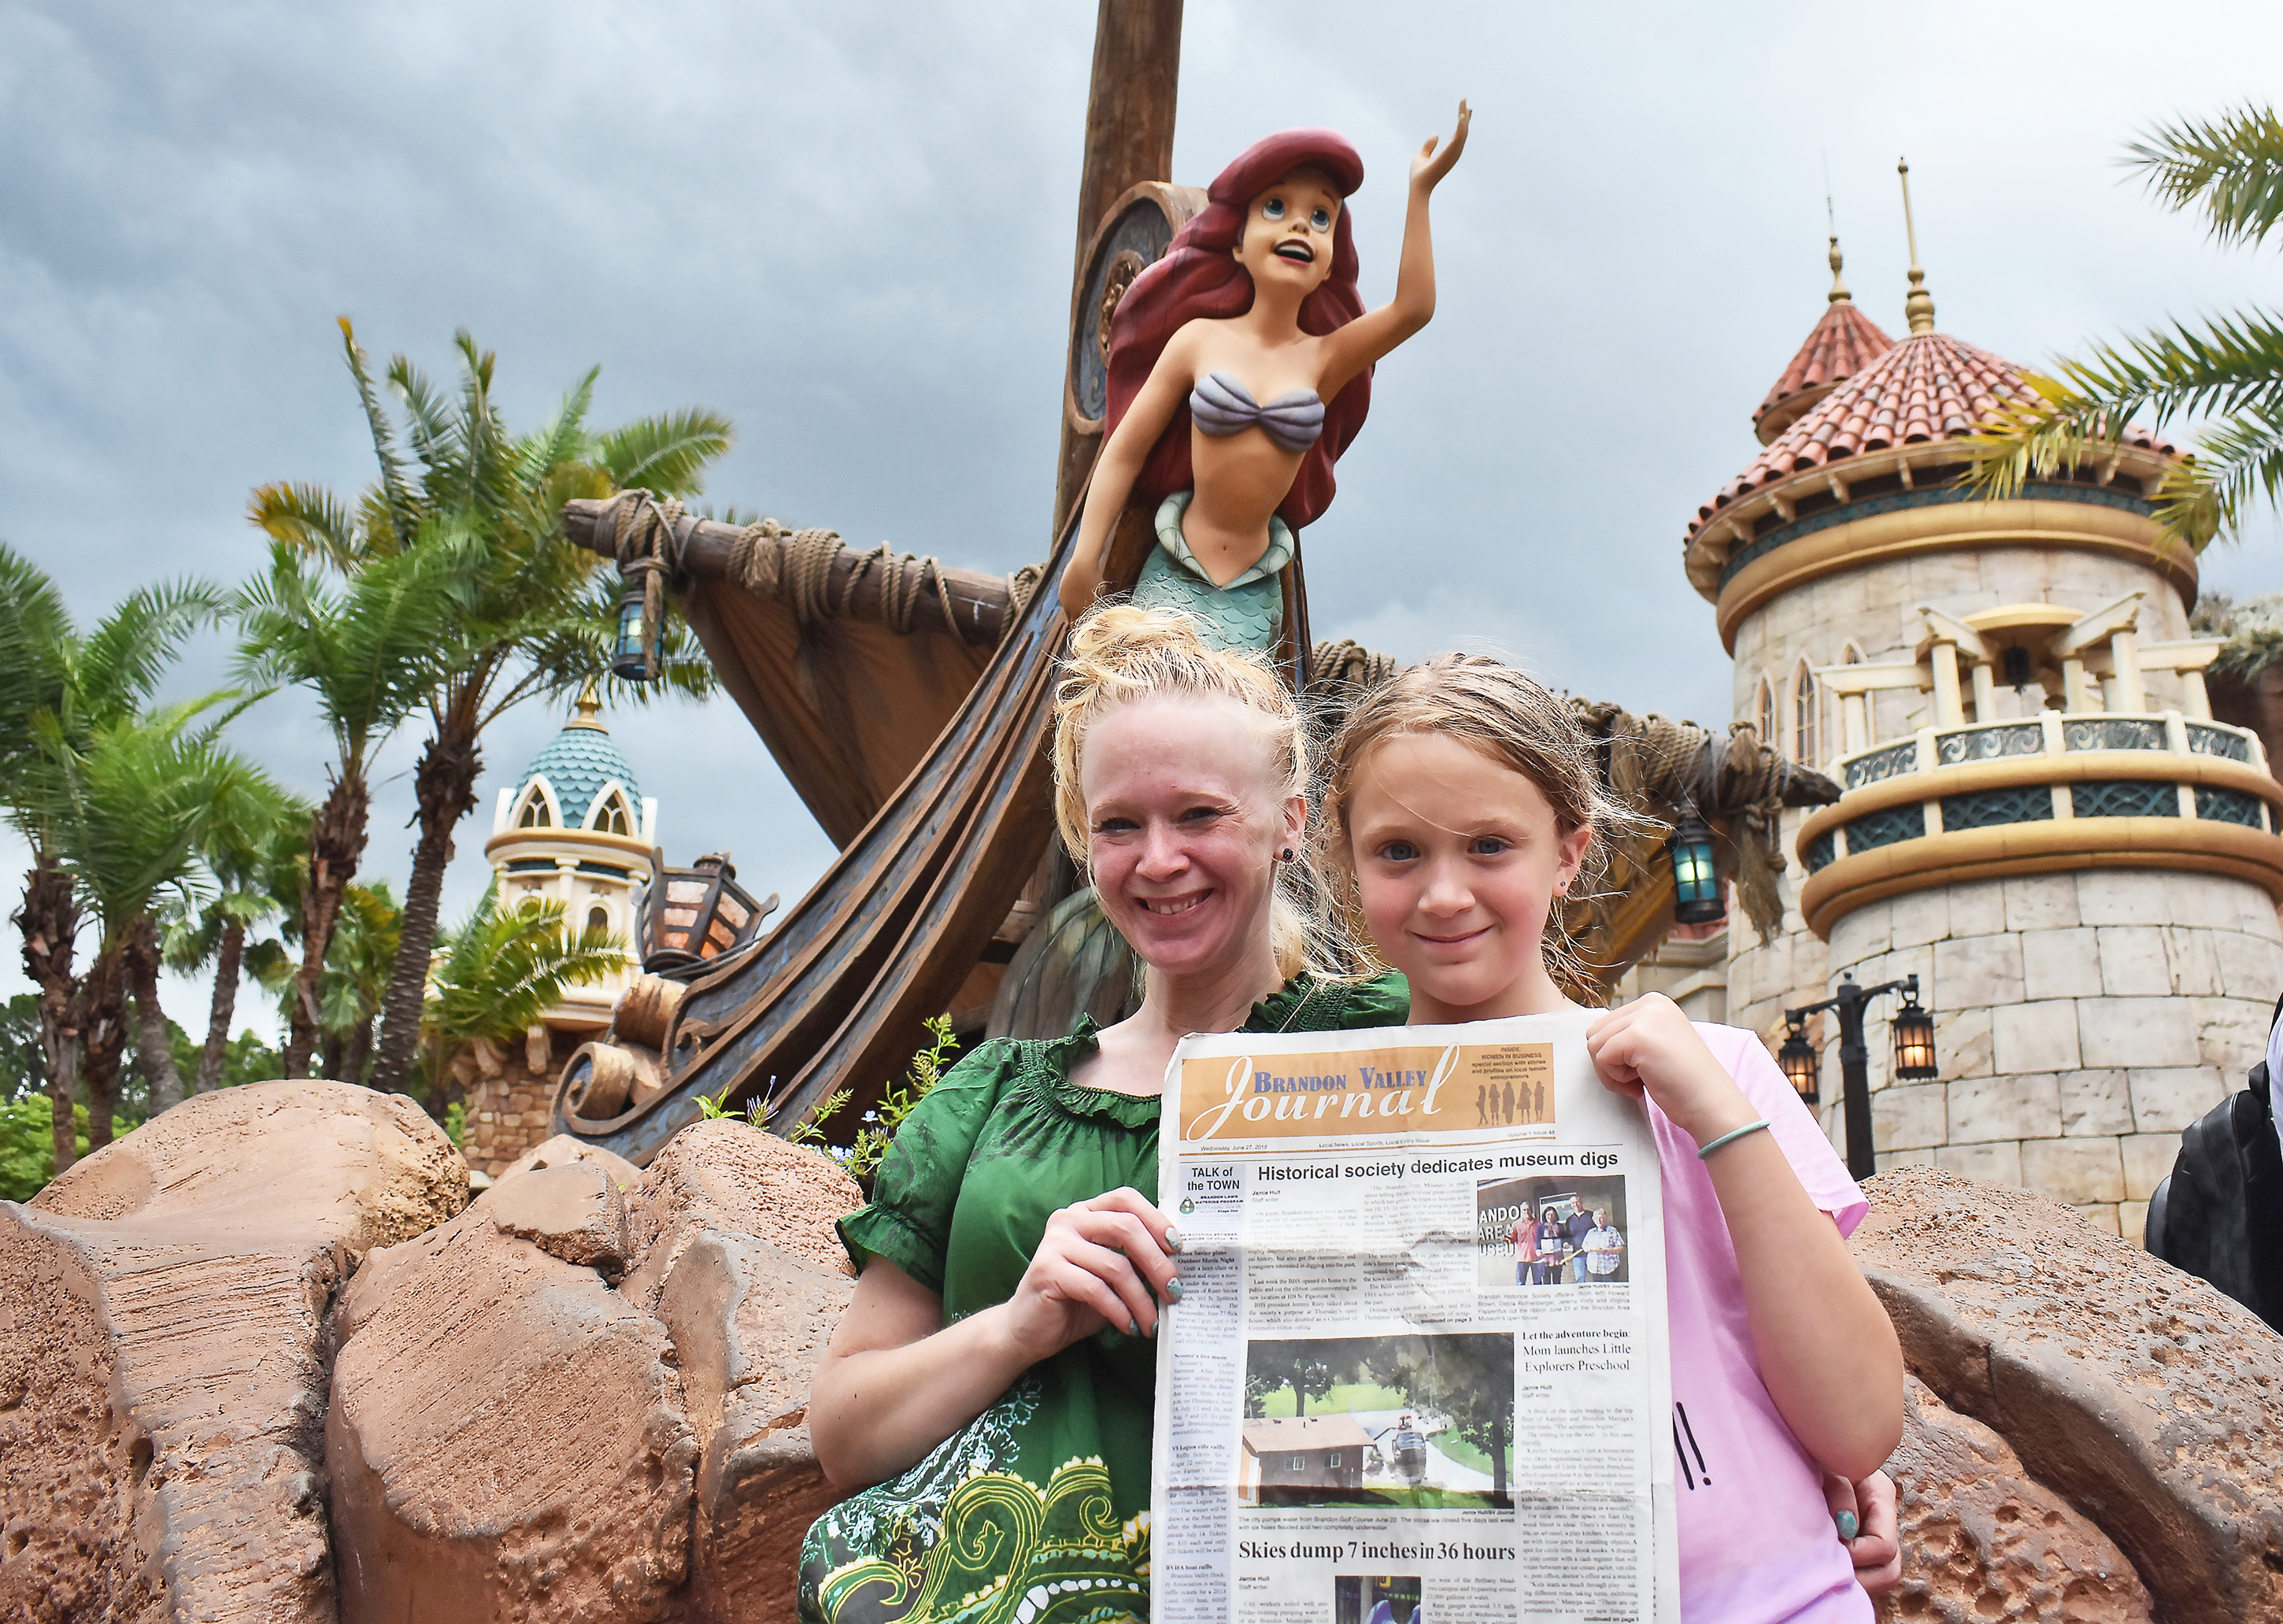 """<span style=""""font-size:10px;""""><i>Brandon Valley Journal </i>staffer Jamie Hult and her daughter, Greta, journey under the sea<span class=""""Apple-converted-space""""></span>with Ariel at Disney World last week with a copy<span class=""""Apple-converted-space""""></span>of the <i>Journal</i>. <strong>Submitted photo.</strong></span>*/"""